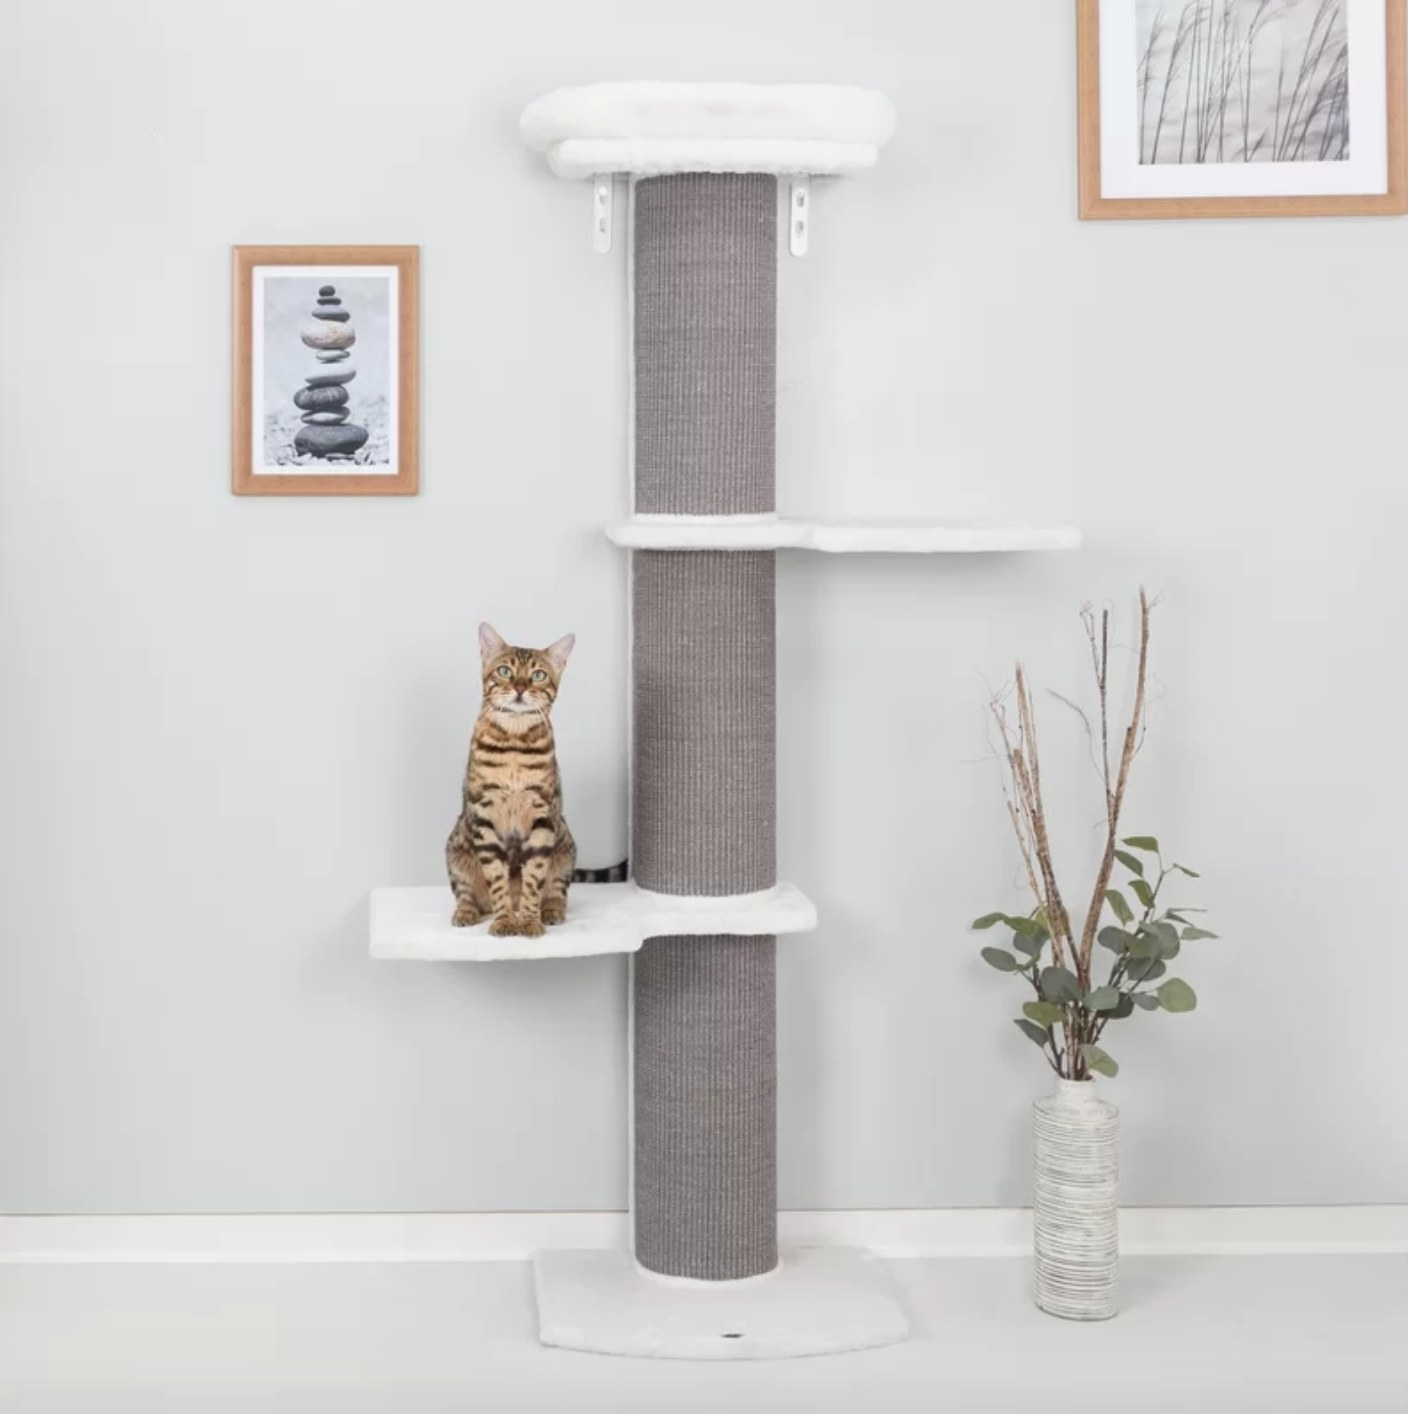 The cat tree in white and gray